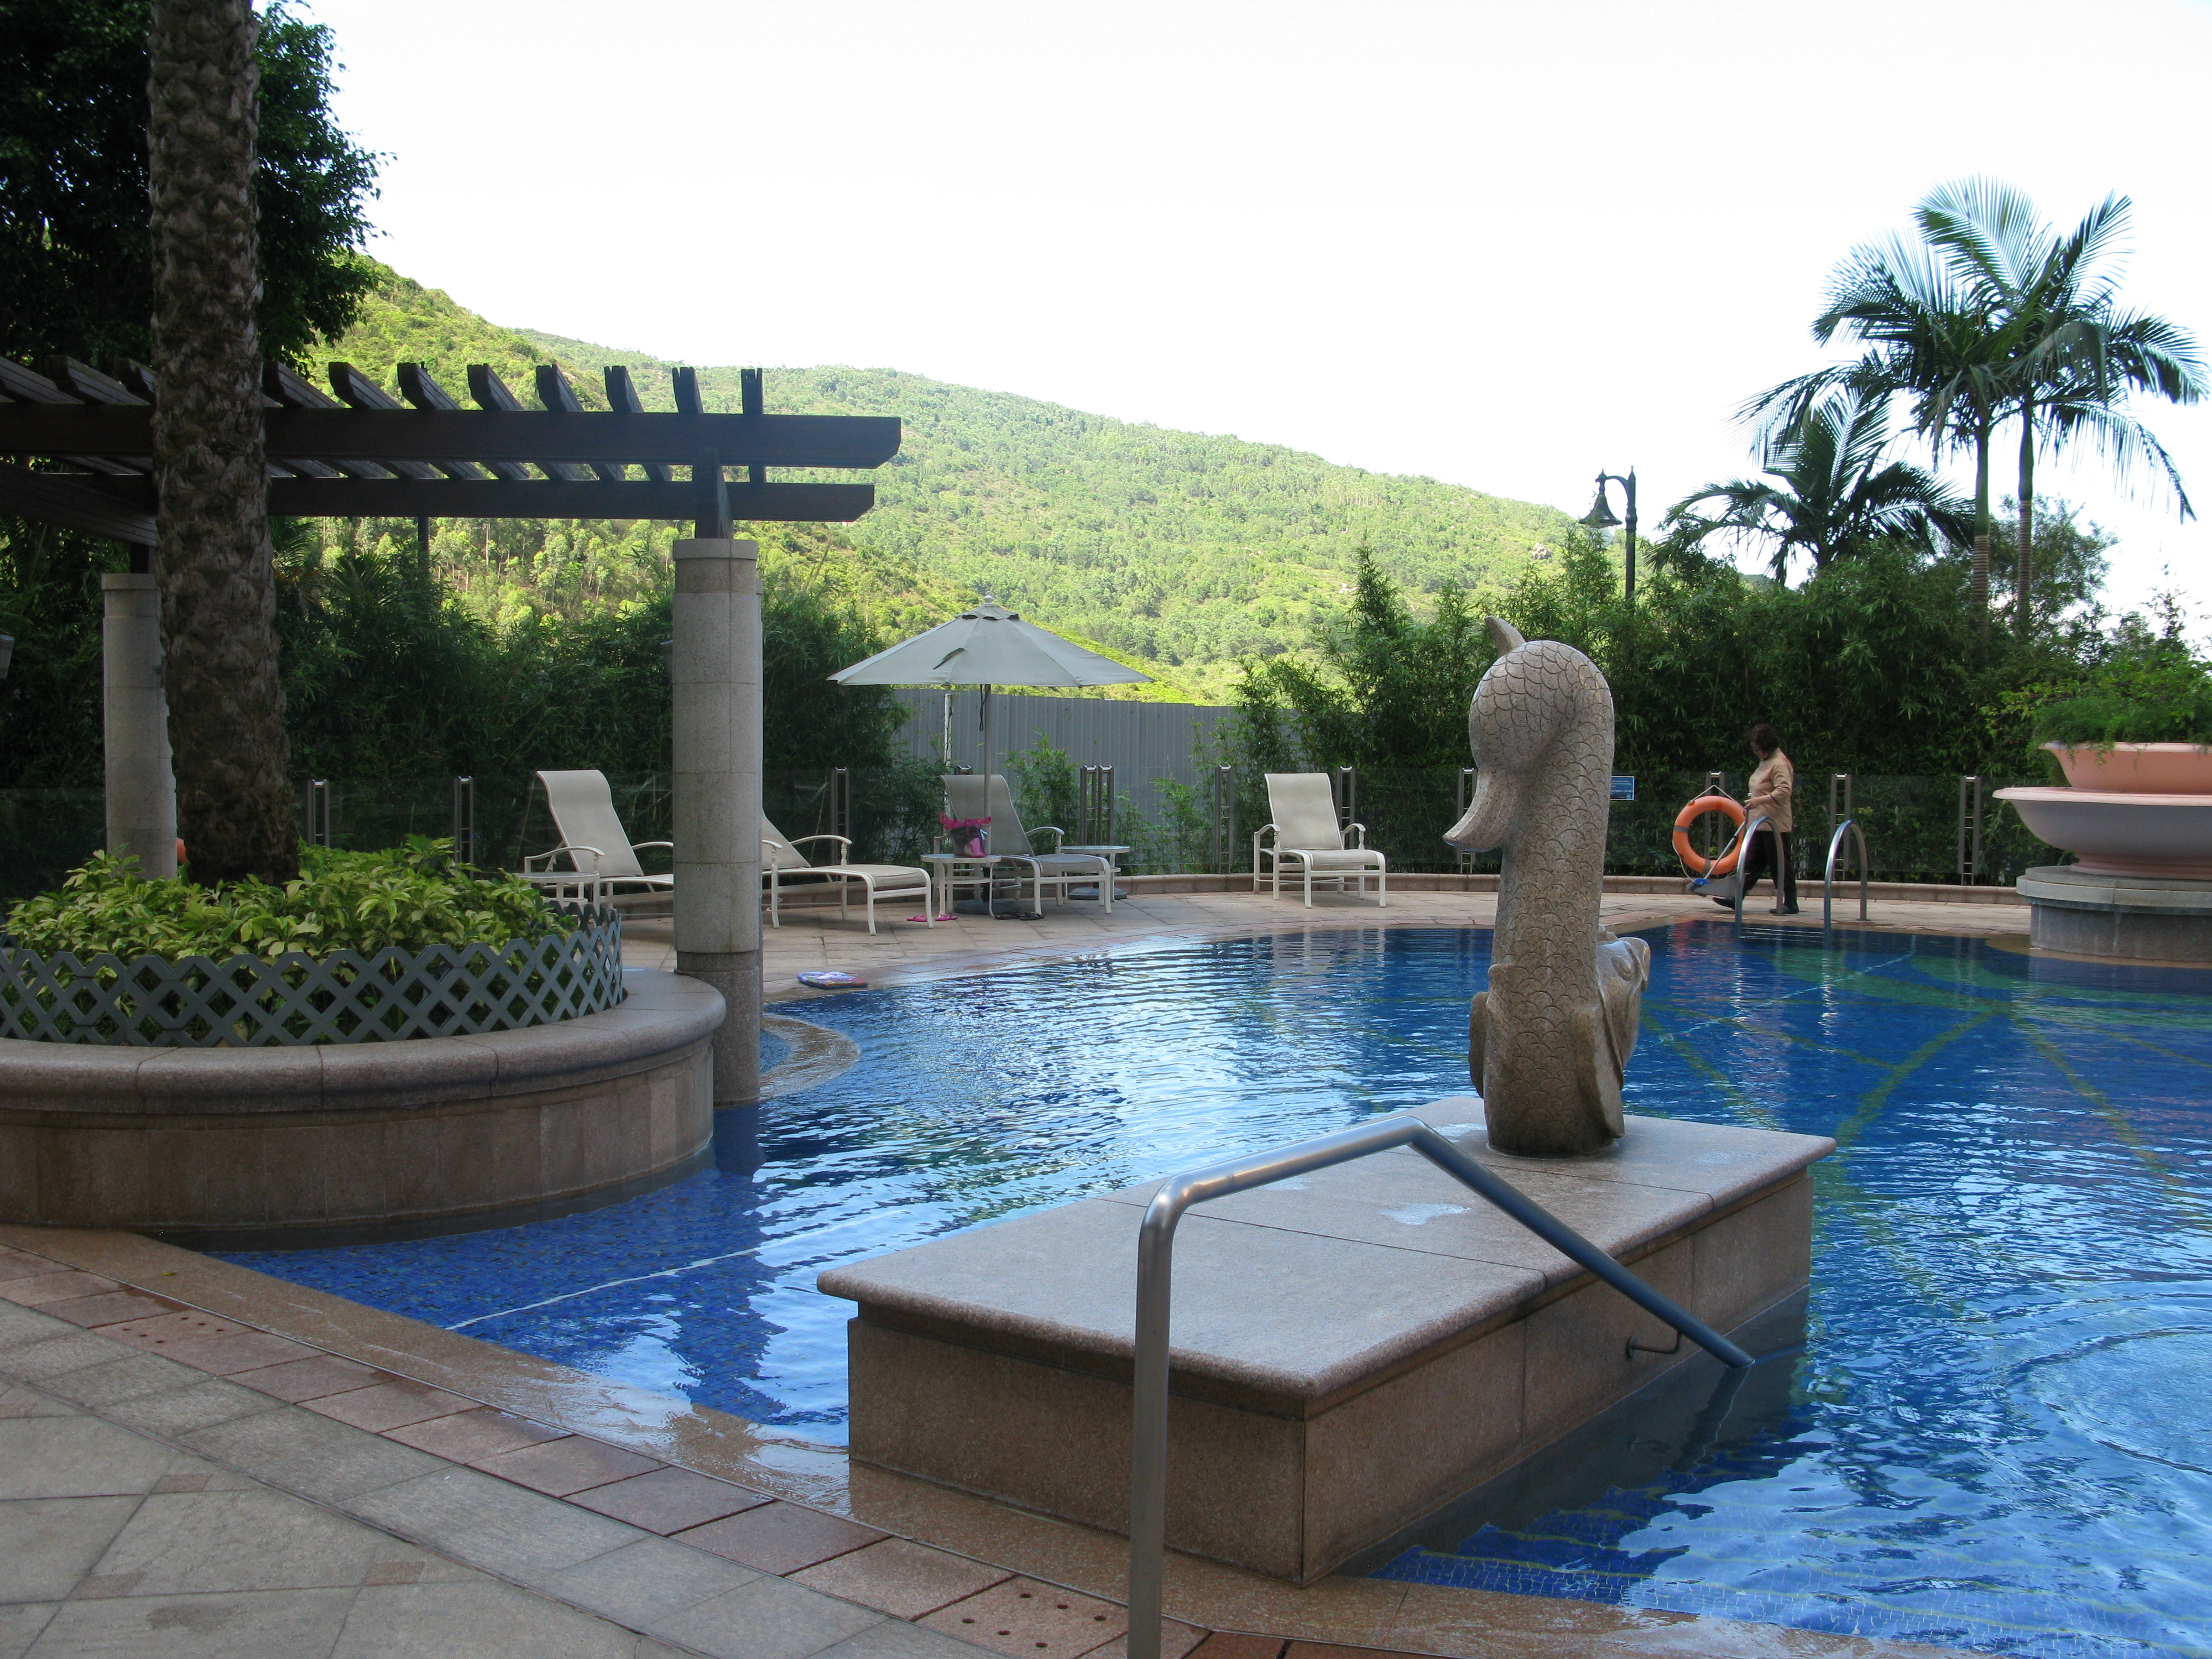 Chianti Pool